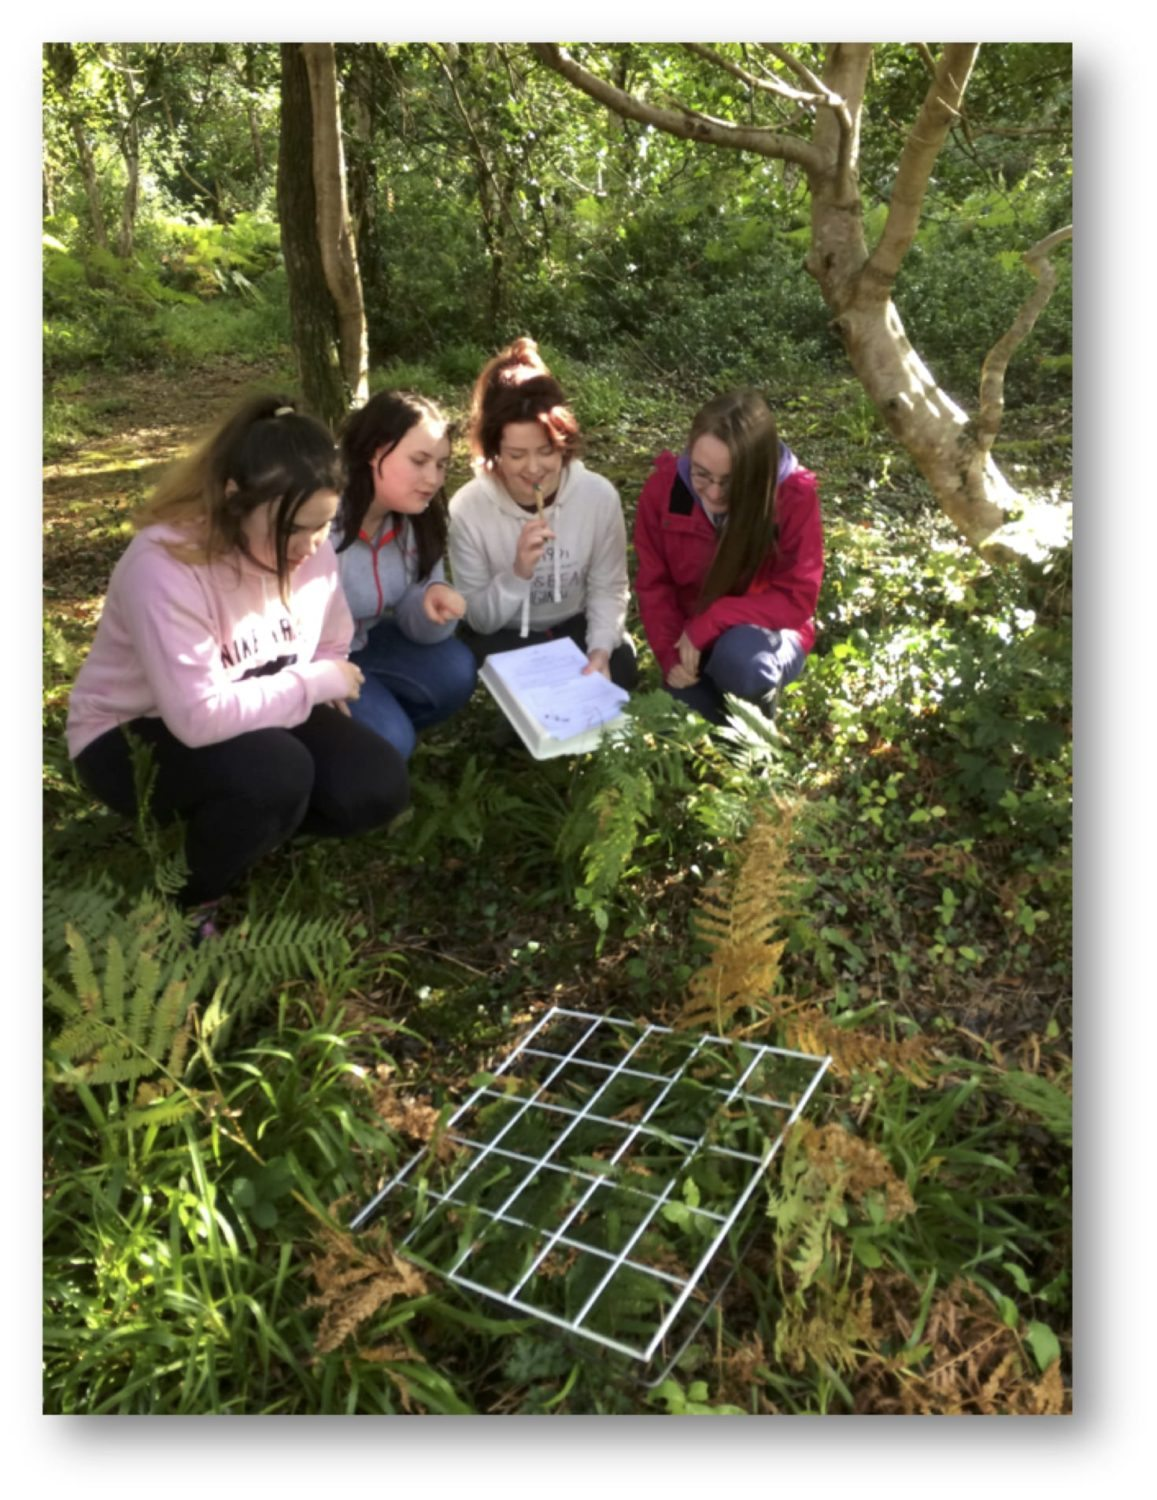 22nd Sept 2016: Chloe Collins, Shannon McKenna, Meaghan Hartigan and Hannah Barrett examine the species present in the habitat using a quadrat